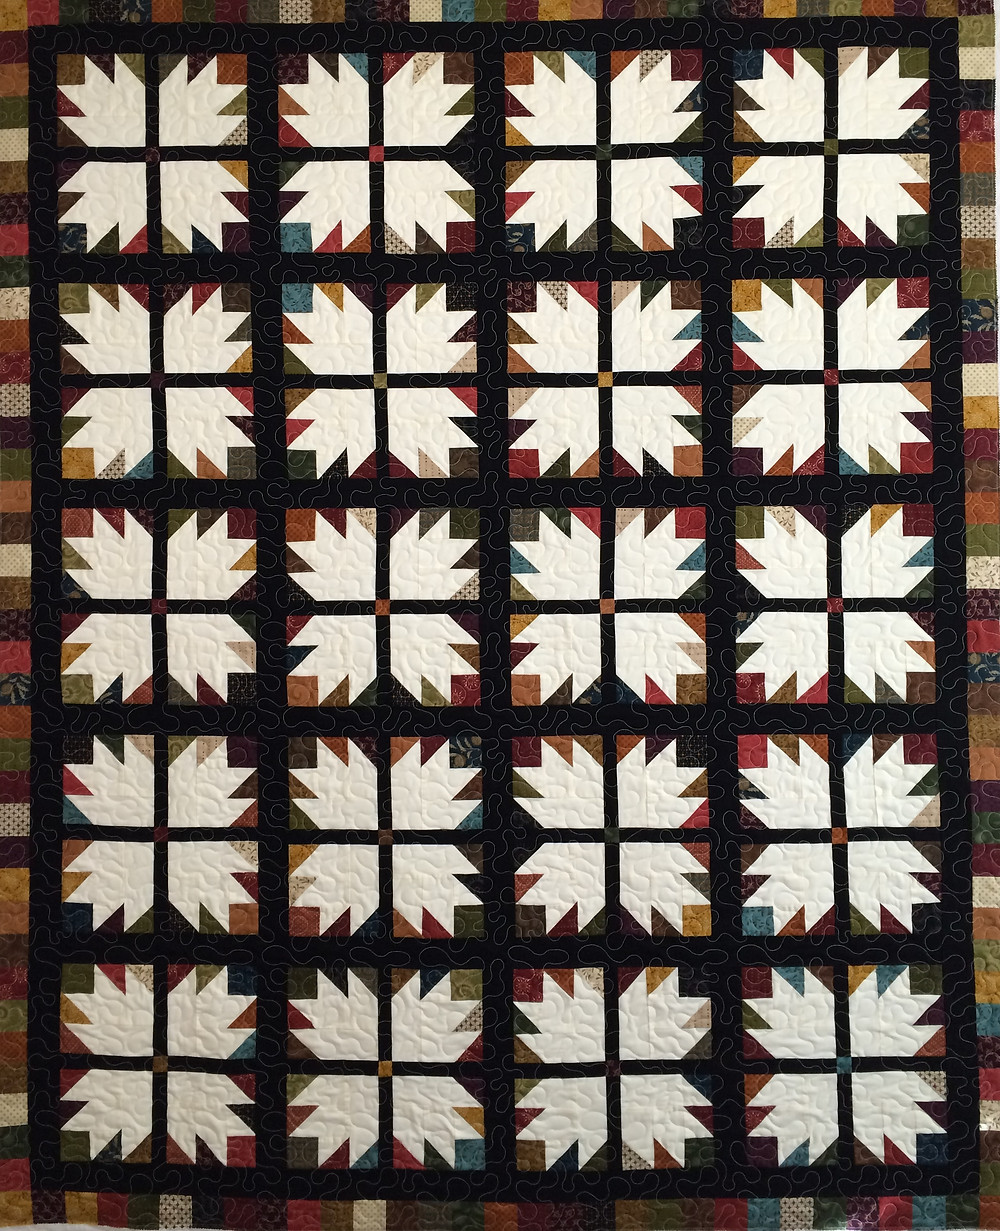 Julianna Bear Paws Quilt